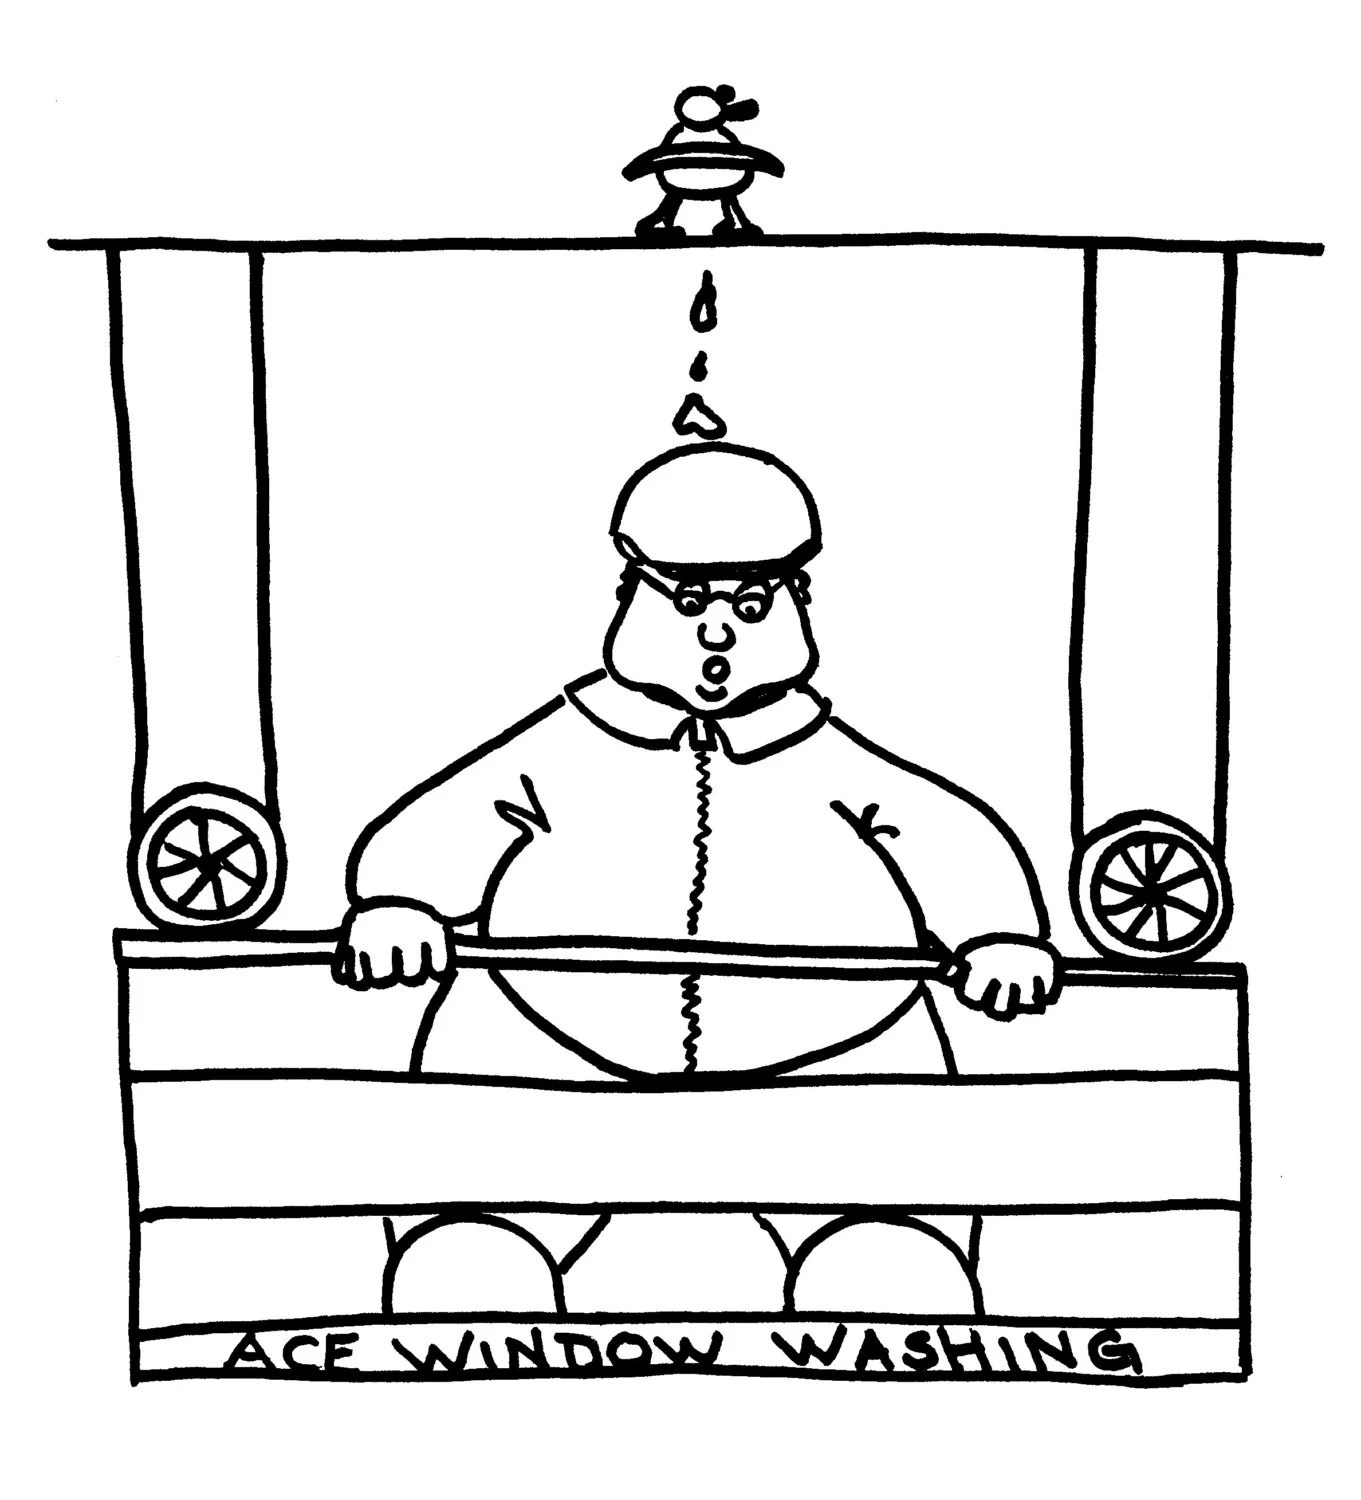 On the Job Funny Coloring Pages for Adults from the Chubby